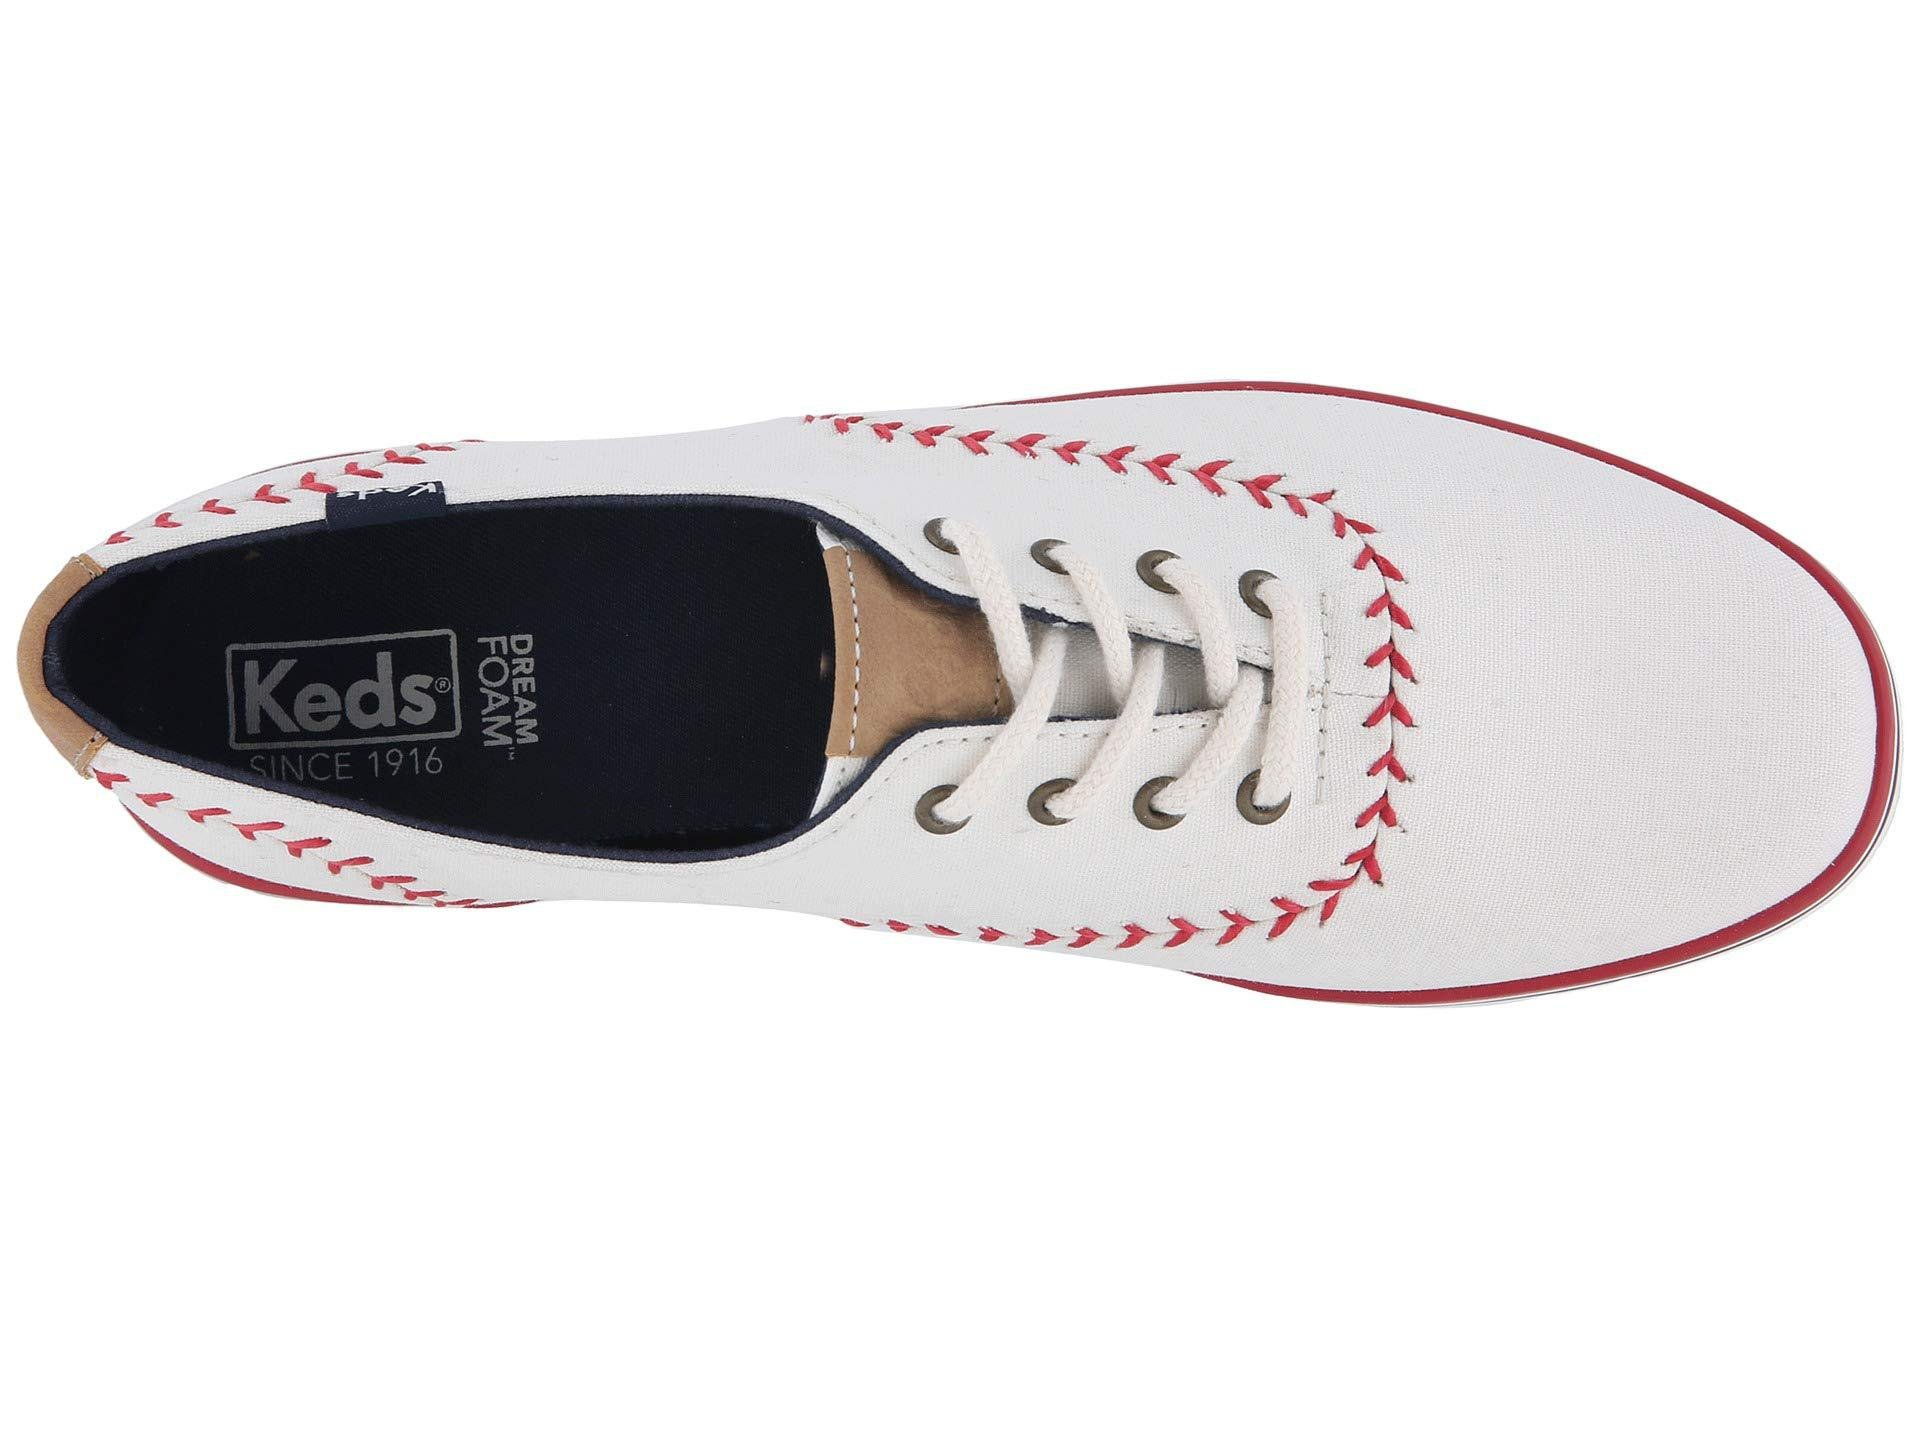 6f4679af97641c Keds - White Champion Pennant Leather Sneaker - Lyst. View fullscreen